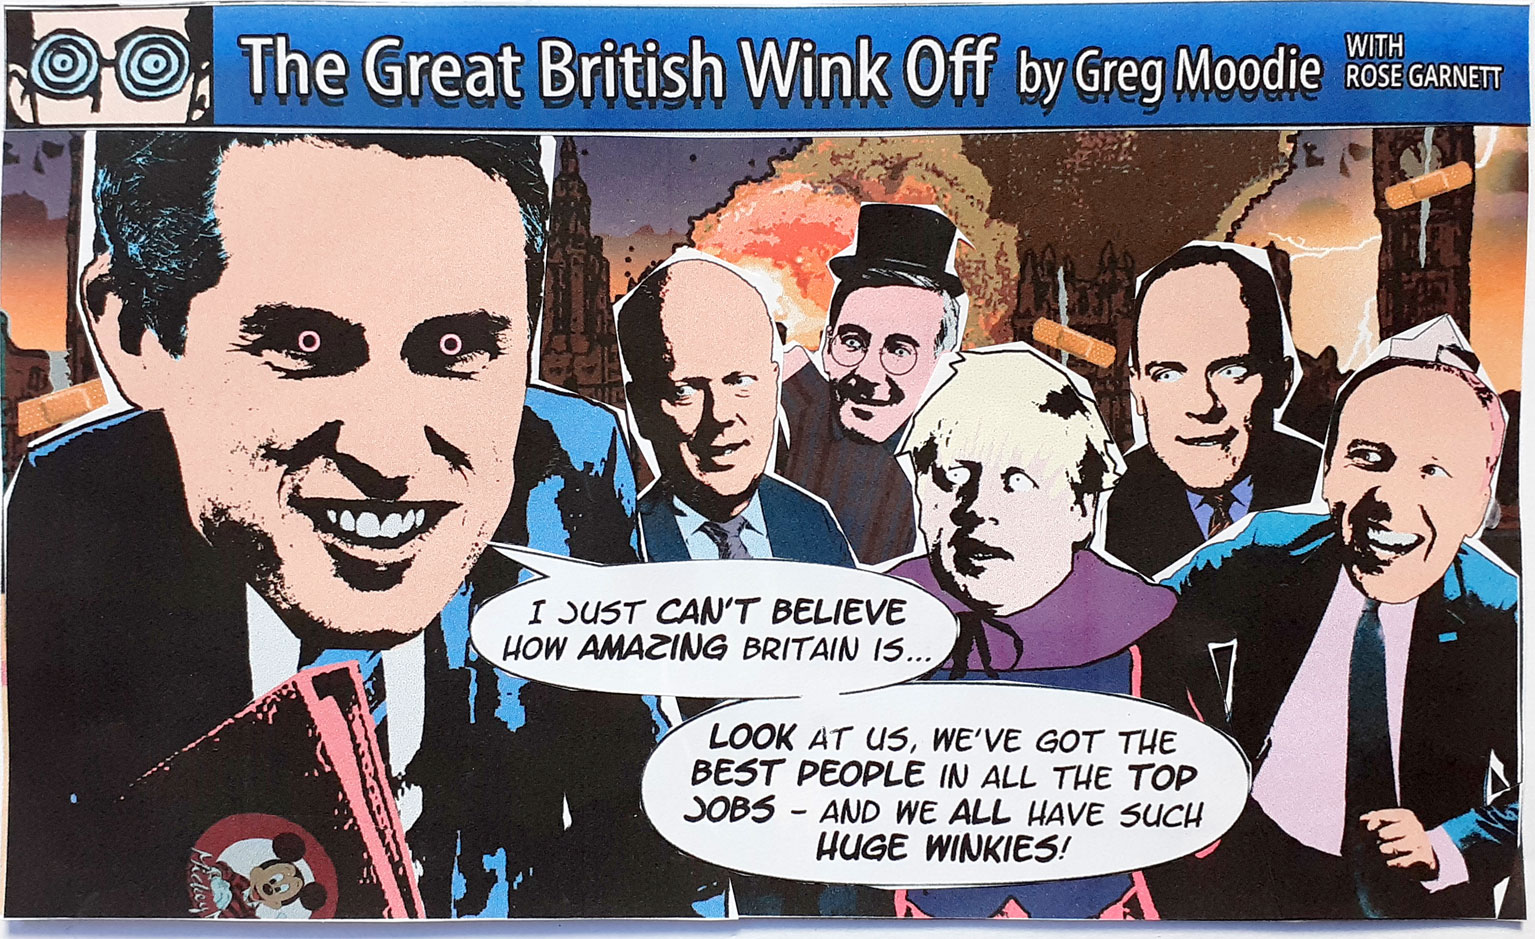 The Great British Wink Off